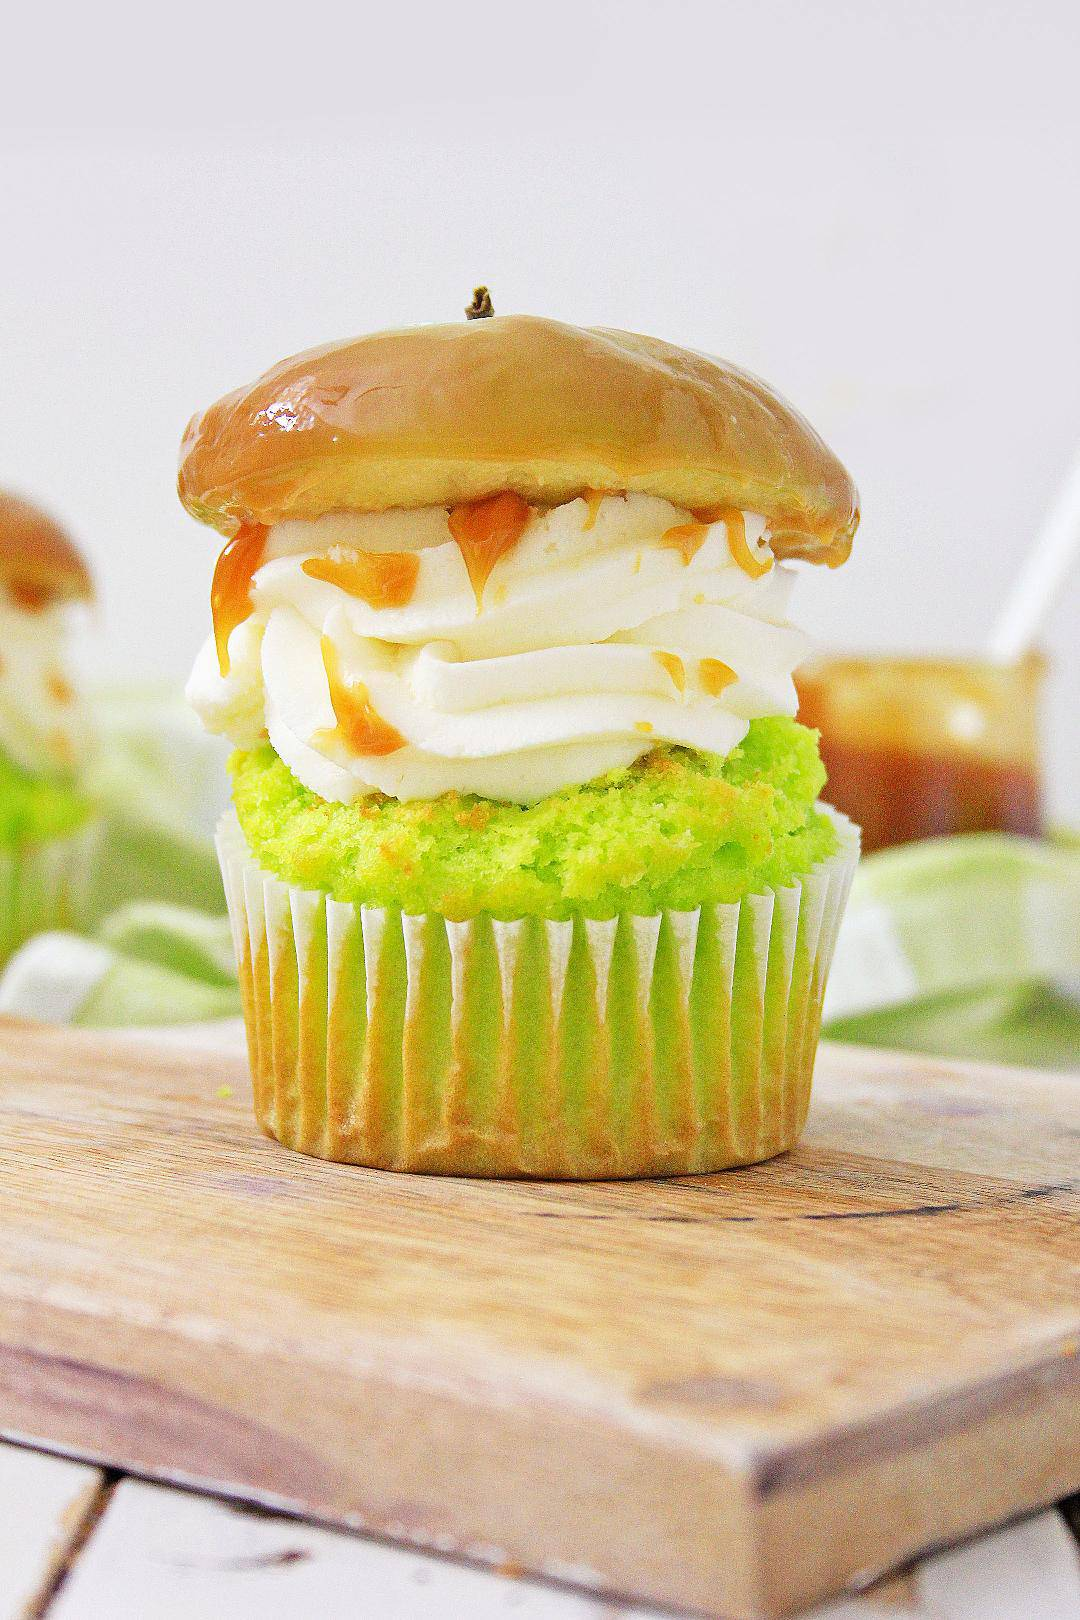 Delicious caramel apple cupcake on cutting board